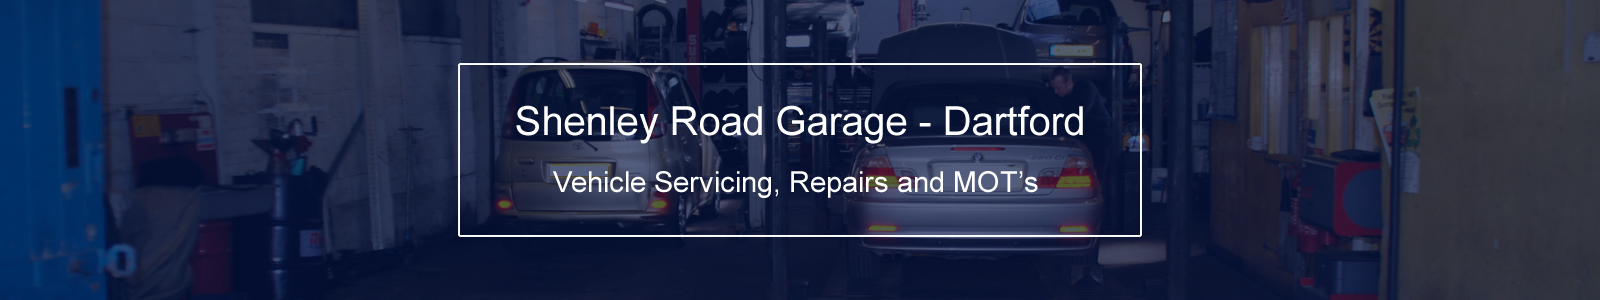 Shenley Road Garage